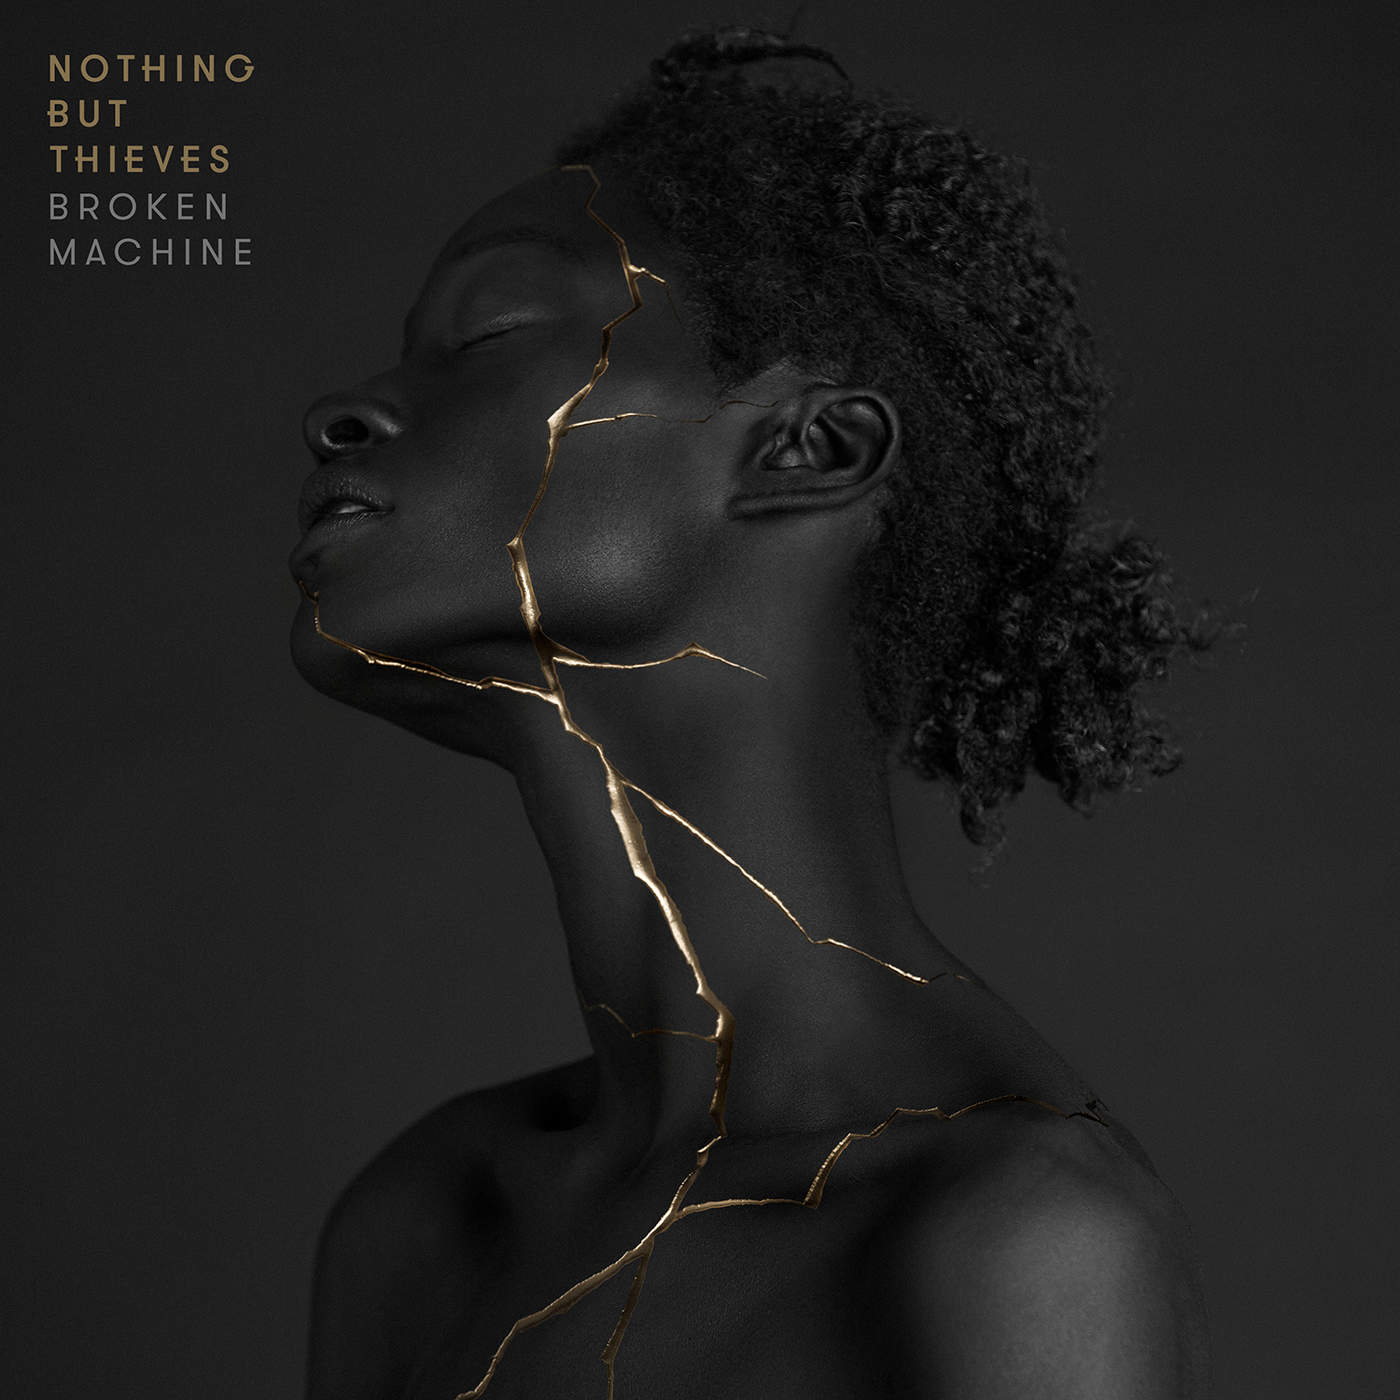 Nothing But Thieves - Broken Machine (Deluxe)